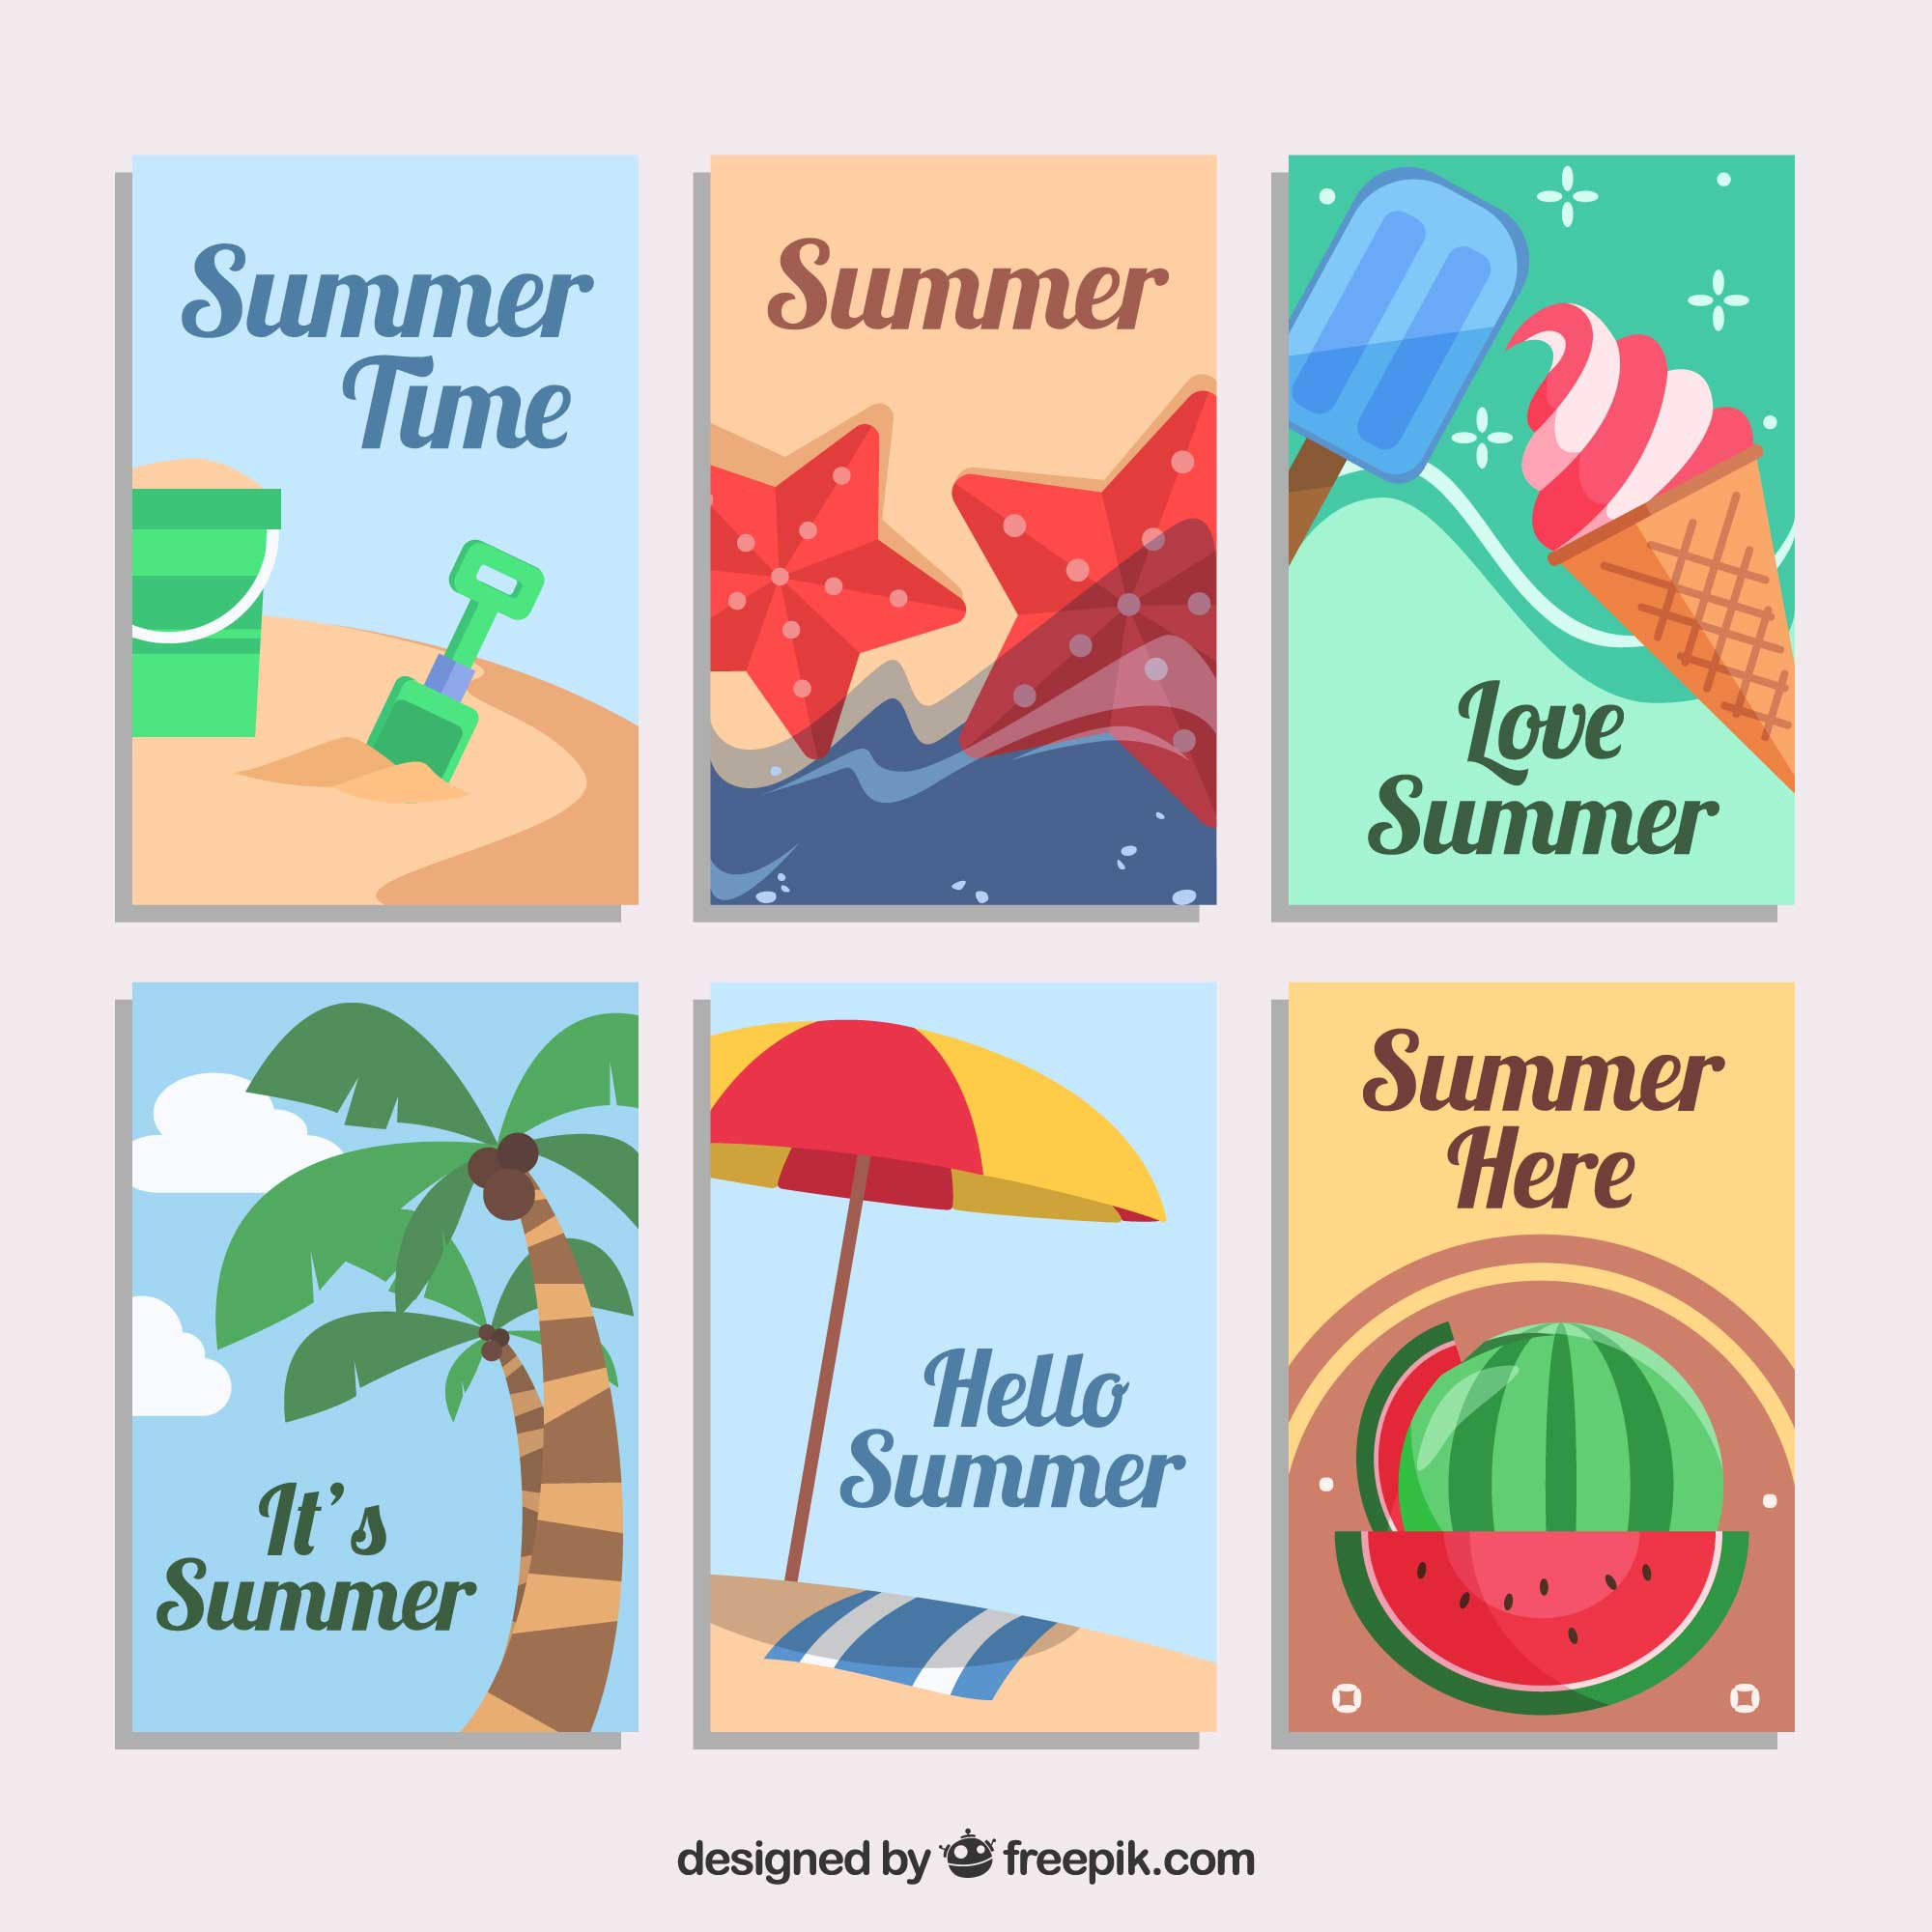 Assortment of six decorative summer cards in flat design